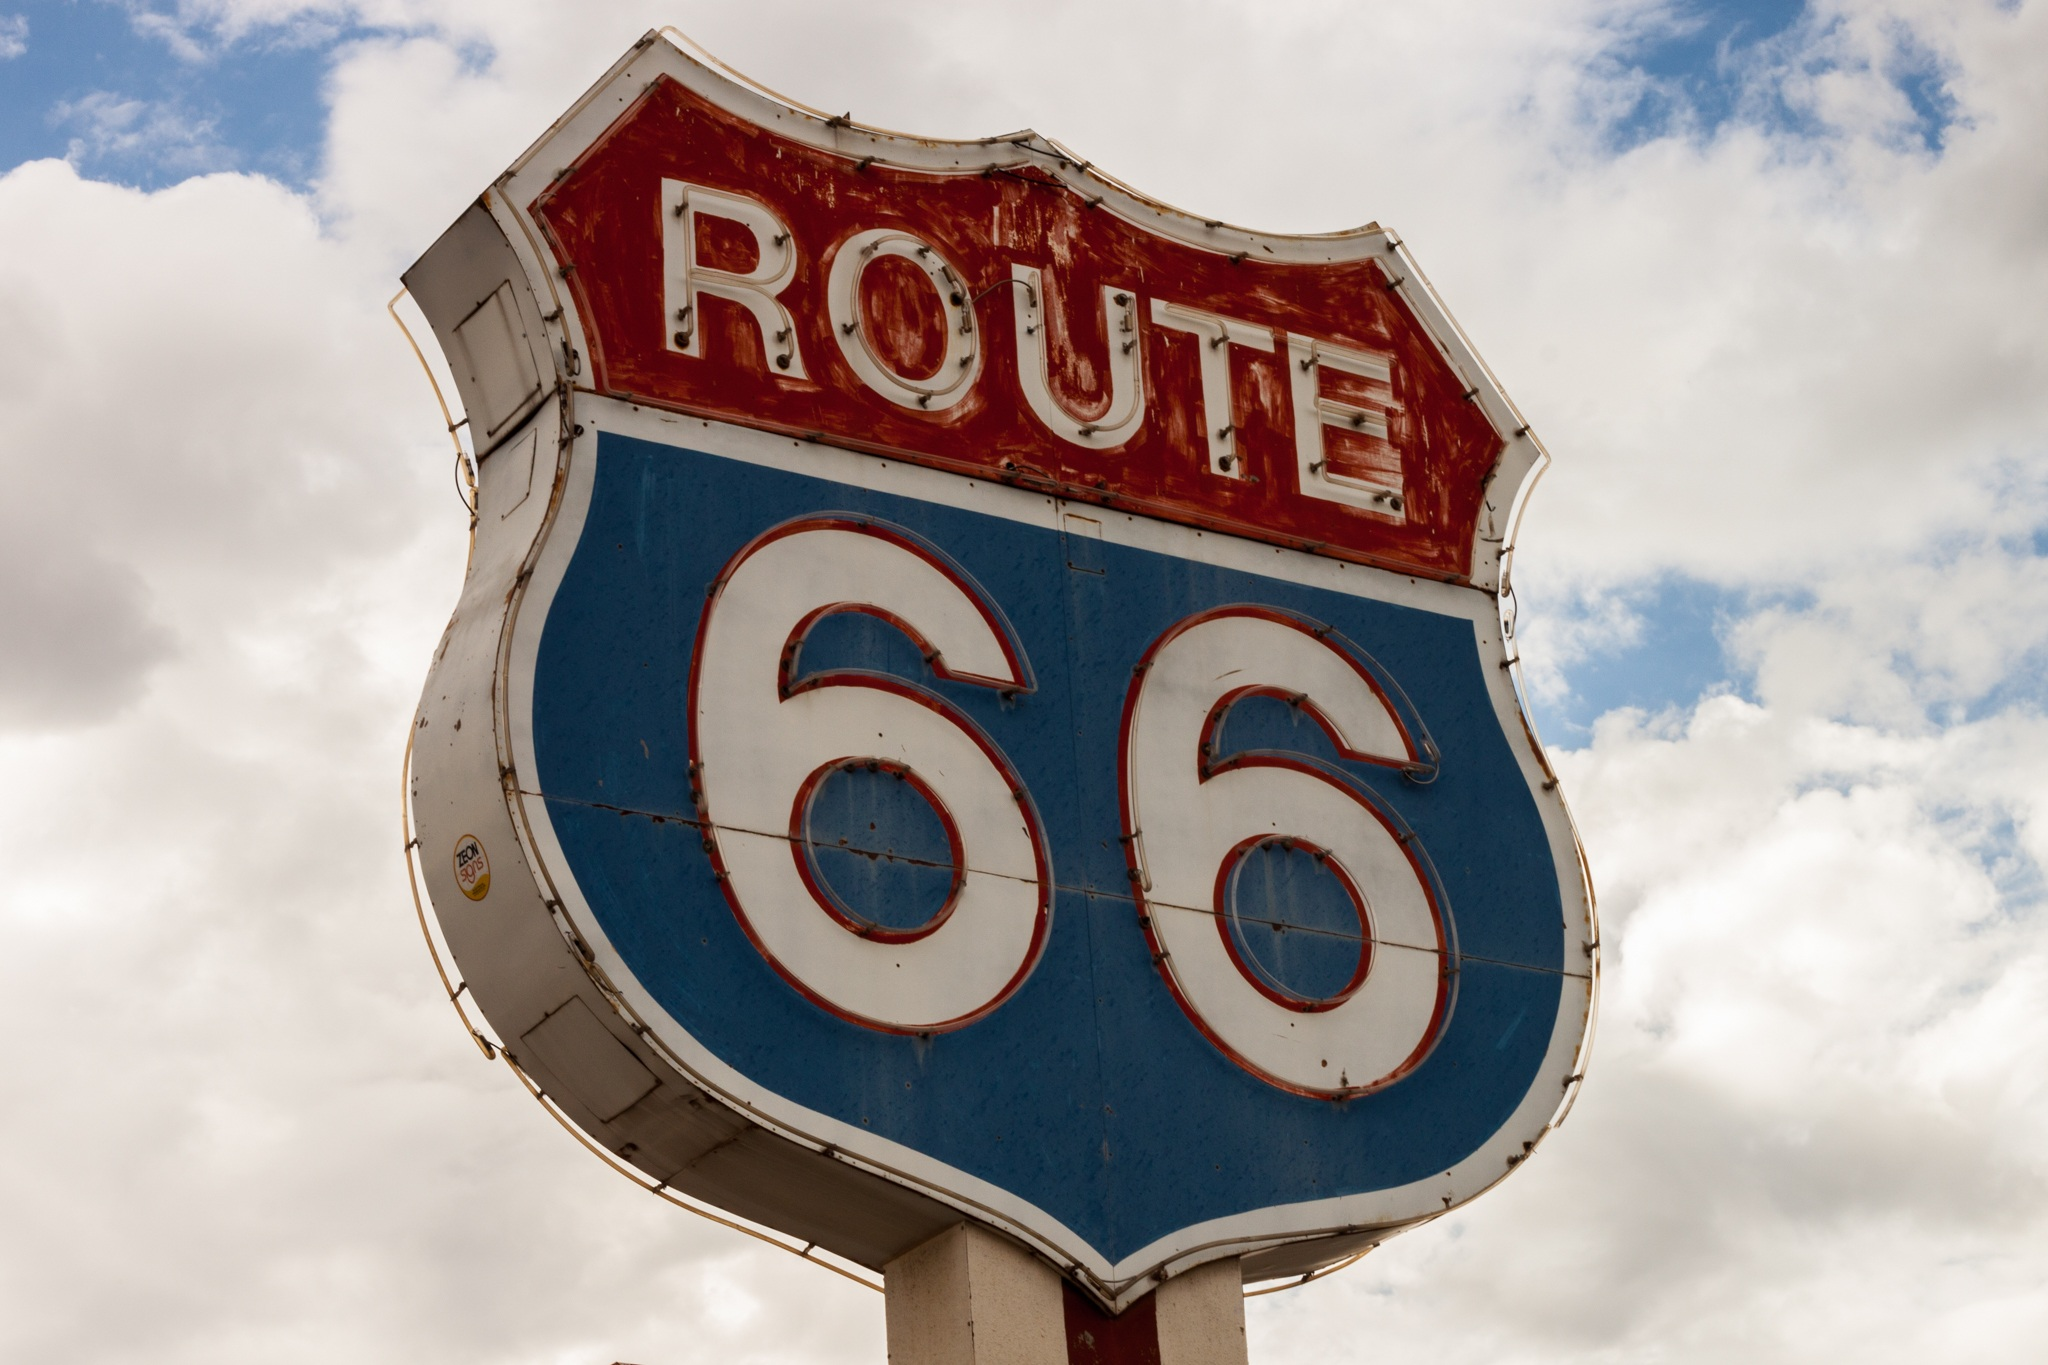 Road trips - Route 66